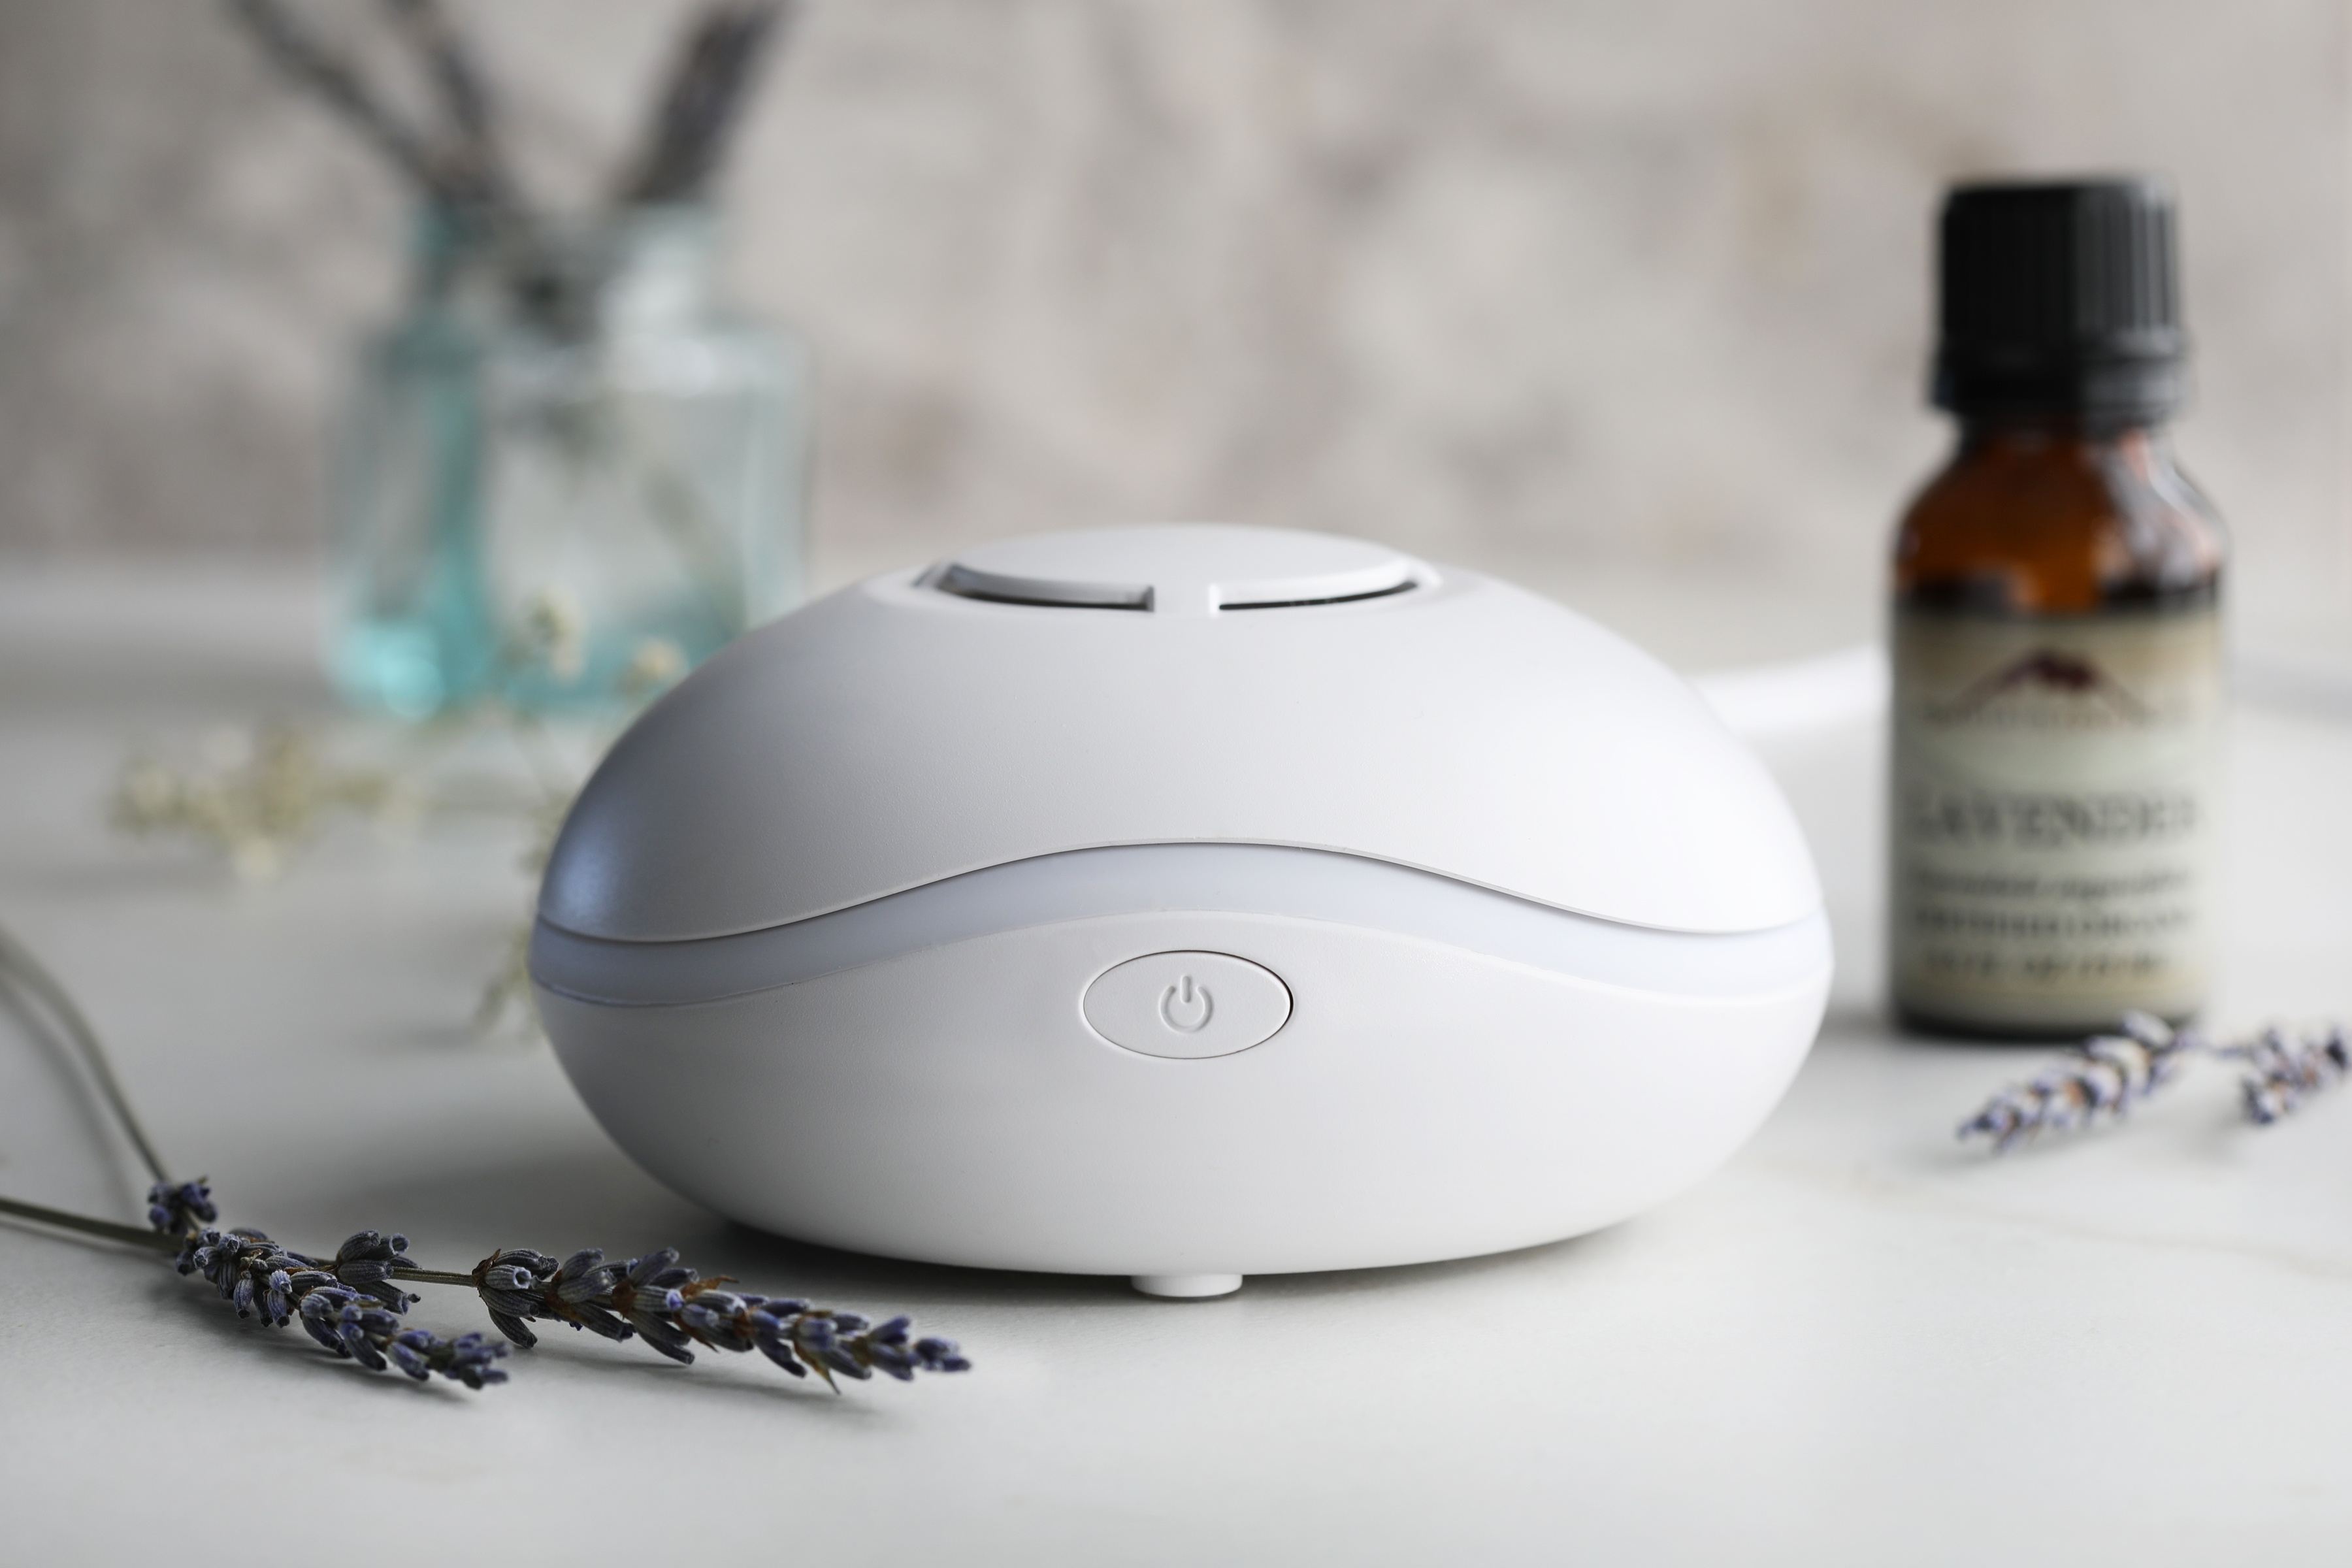 Aroma diffuser with lavender essential oil and lavender flowers sitting by diffuser